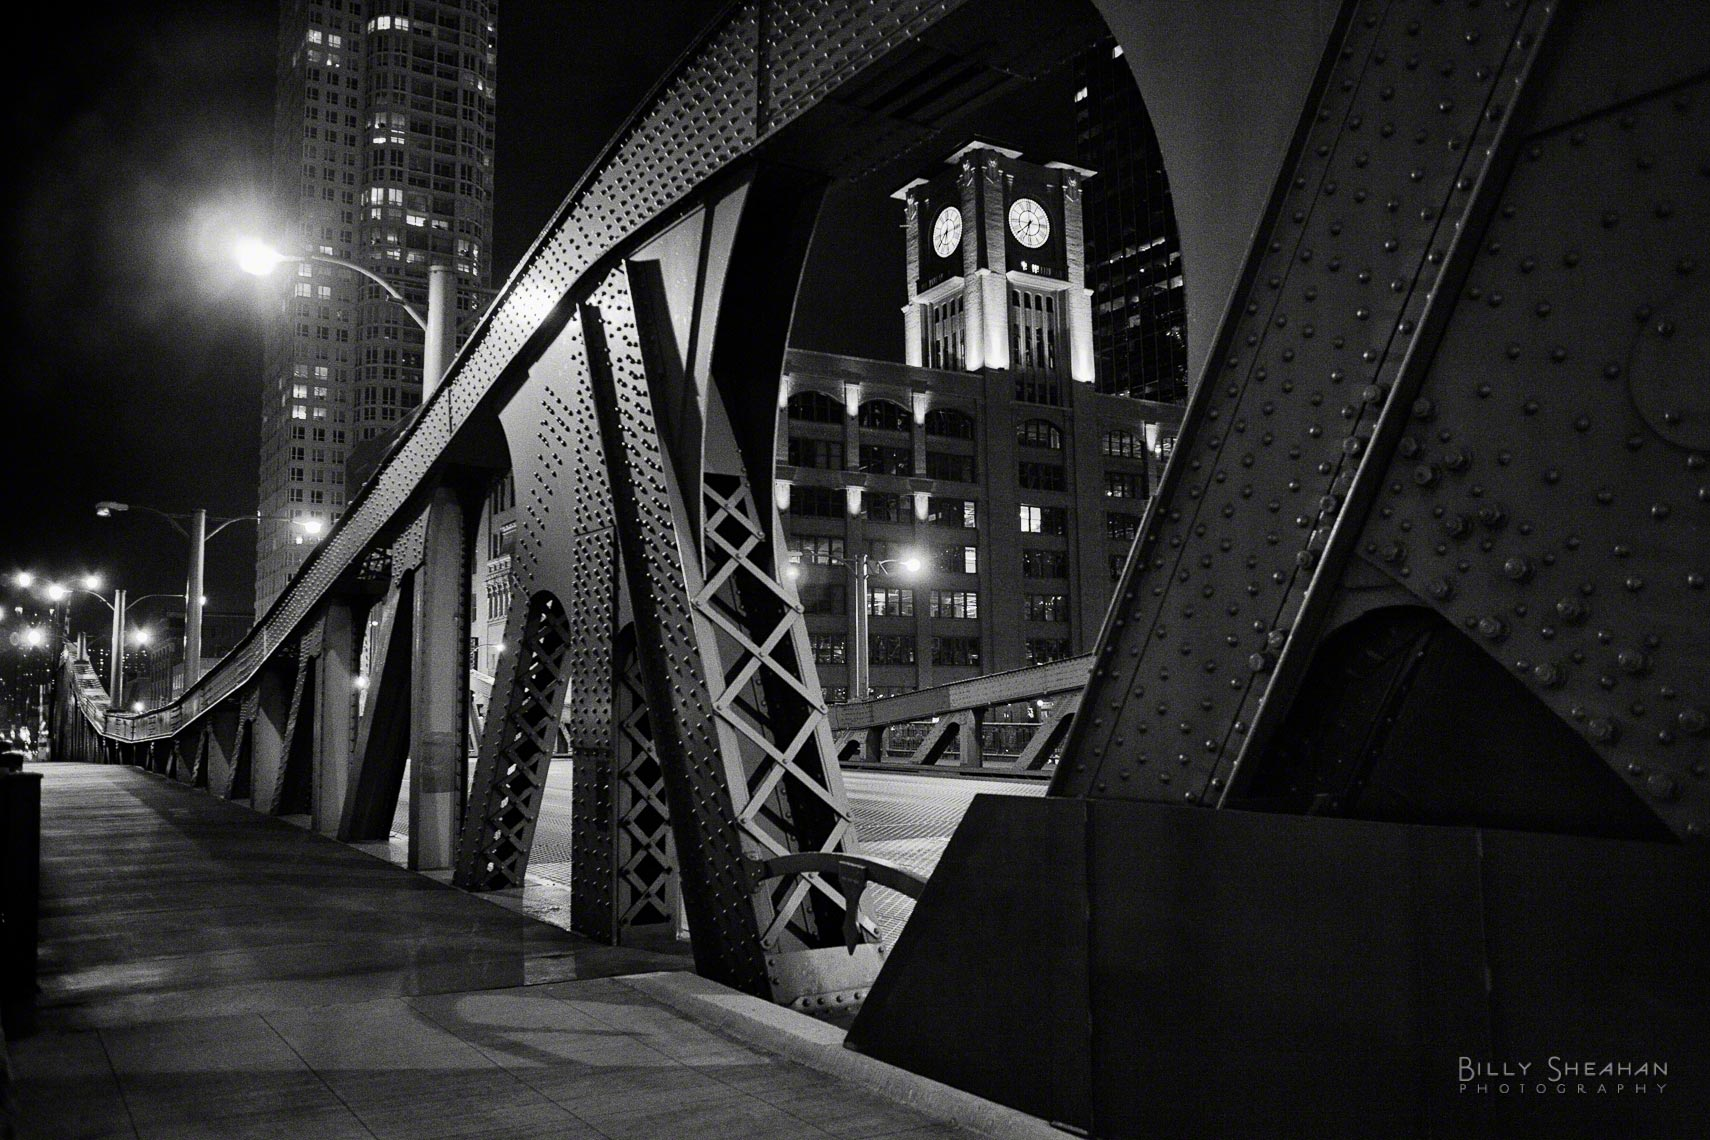 Clock_Tower_LaSalle_St_Bridge_Night_Chicago_26Nov2006_083_BW_D.jpg